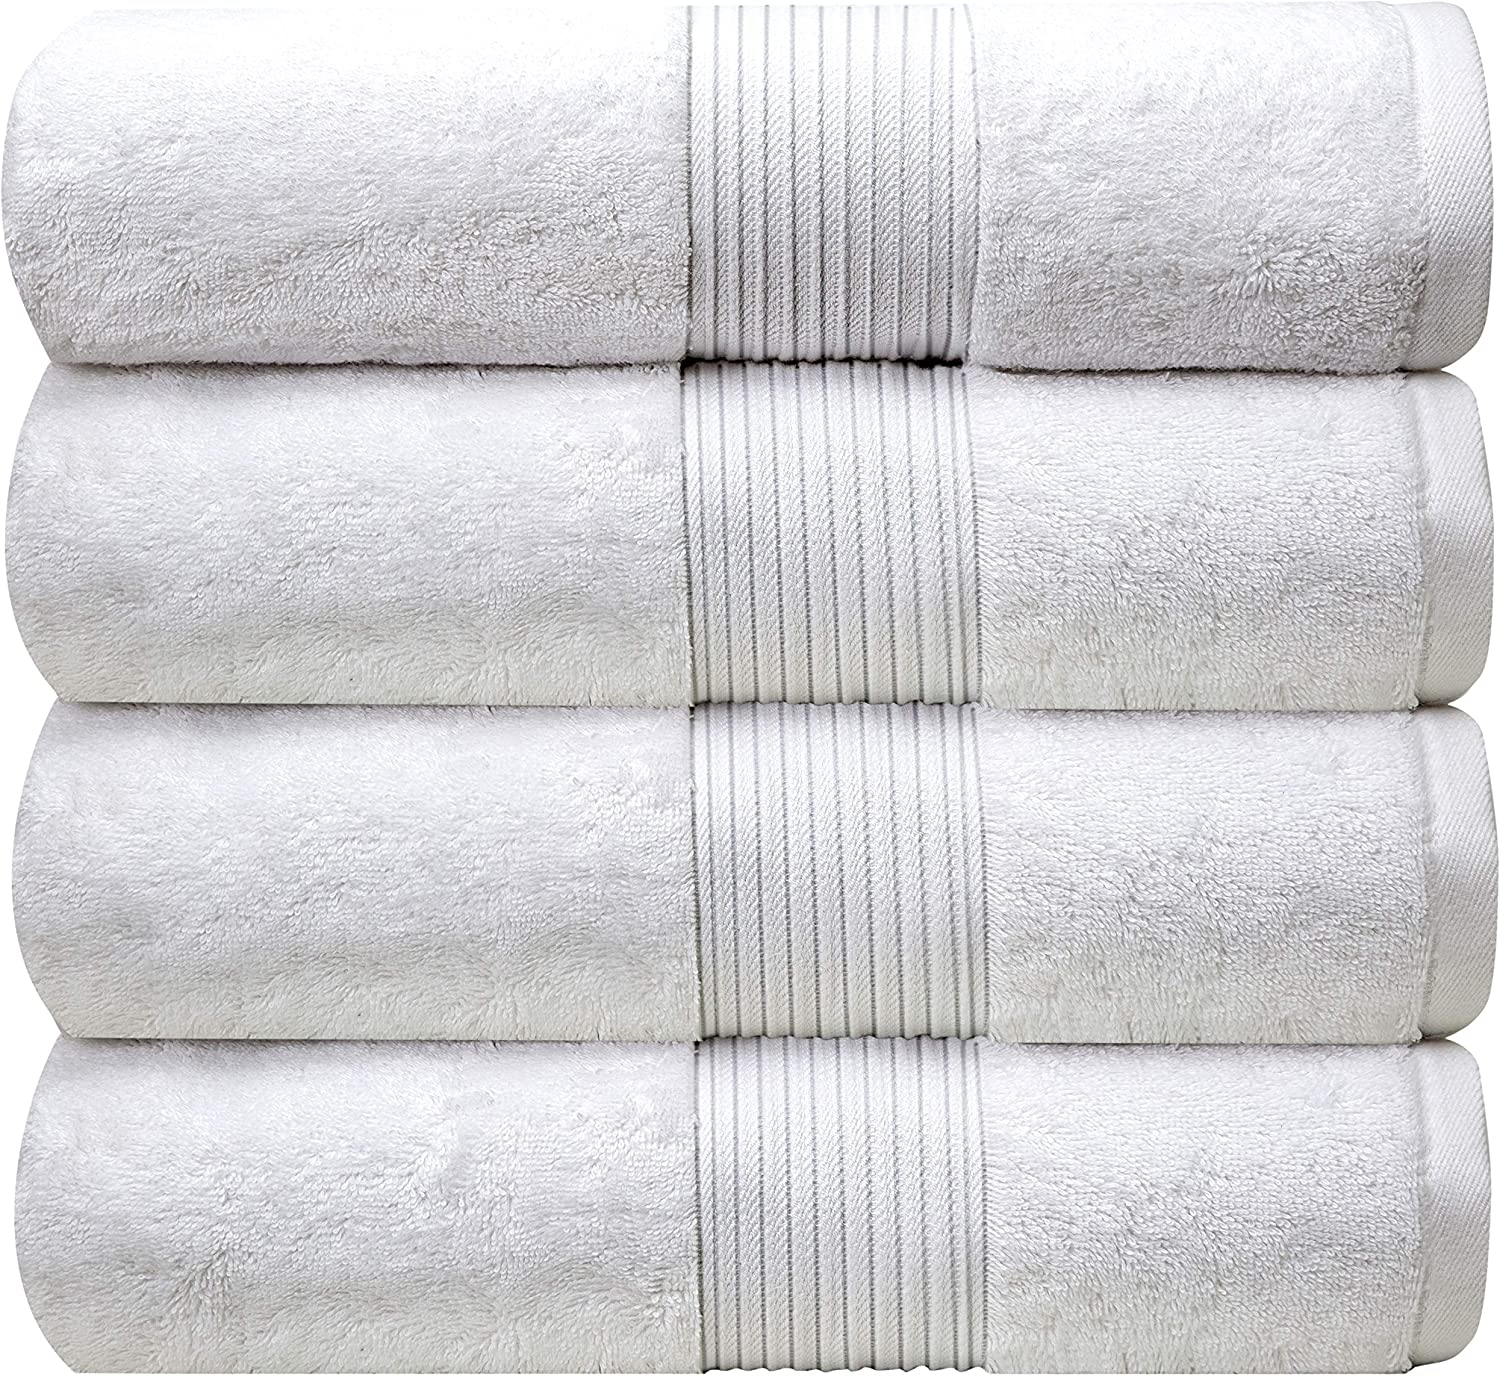 """Bliss Luxury Combed Cotton Bath Towels - 27"""" x 54"""" Standard Size Premium Quality Bath Sheet - 650 GSM - Soft, Absorbent (White): Kitchen & Dining"""